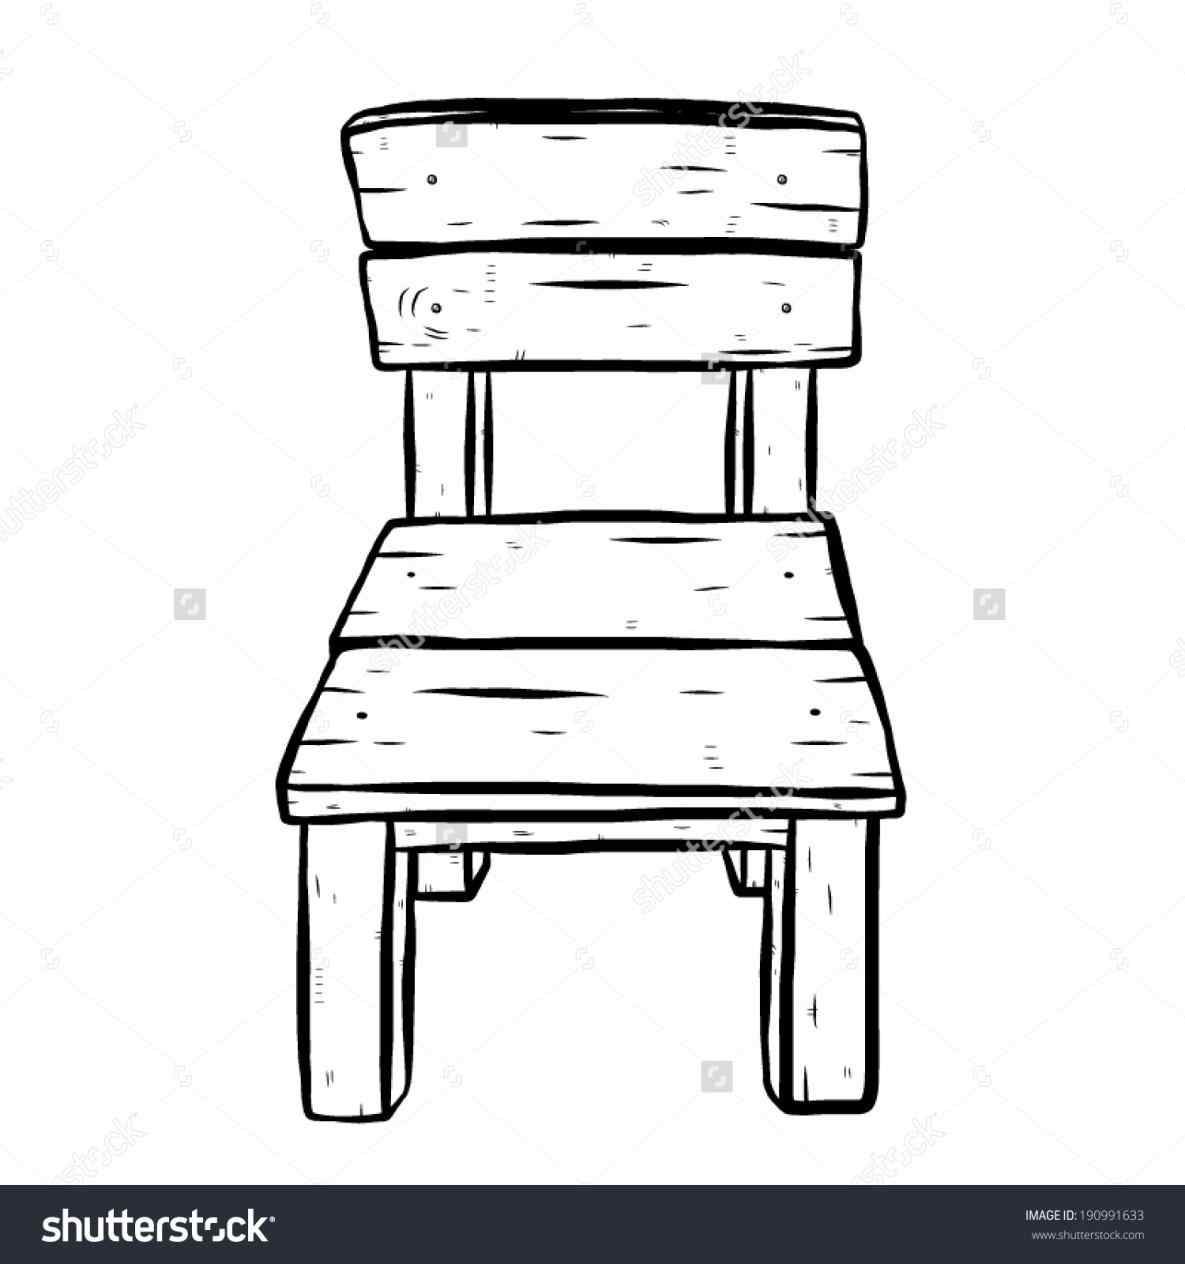 Chair clipart black and white. The images collection of